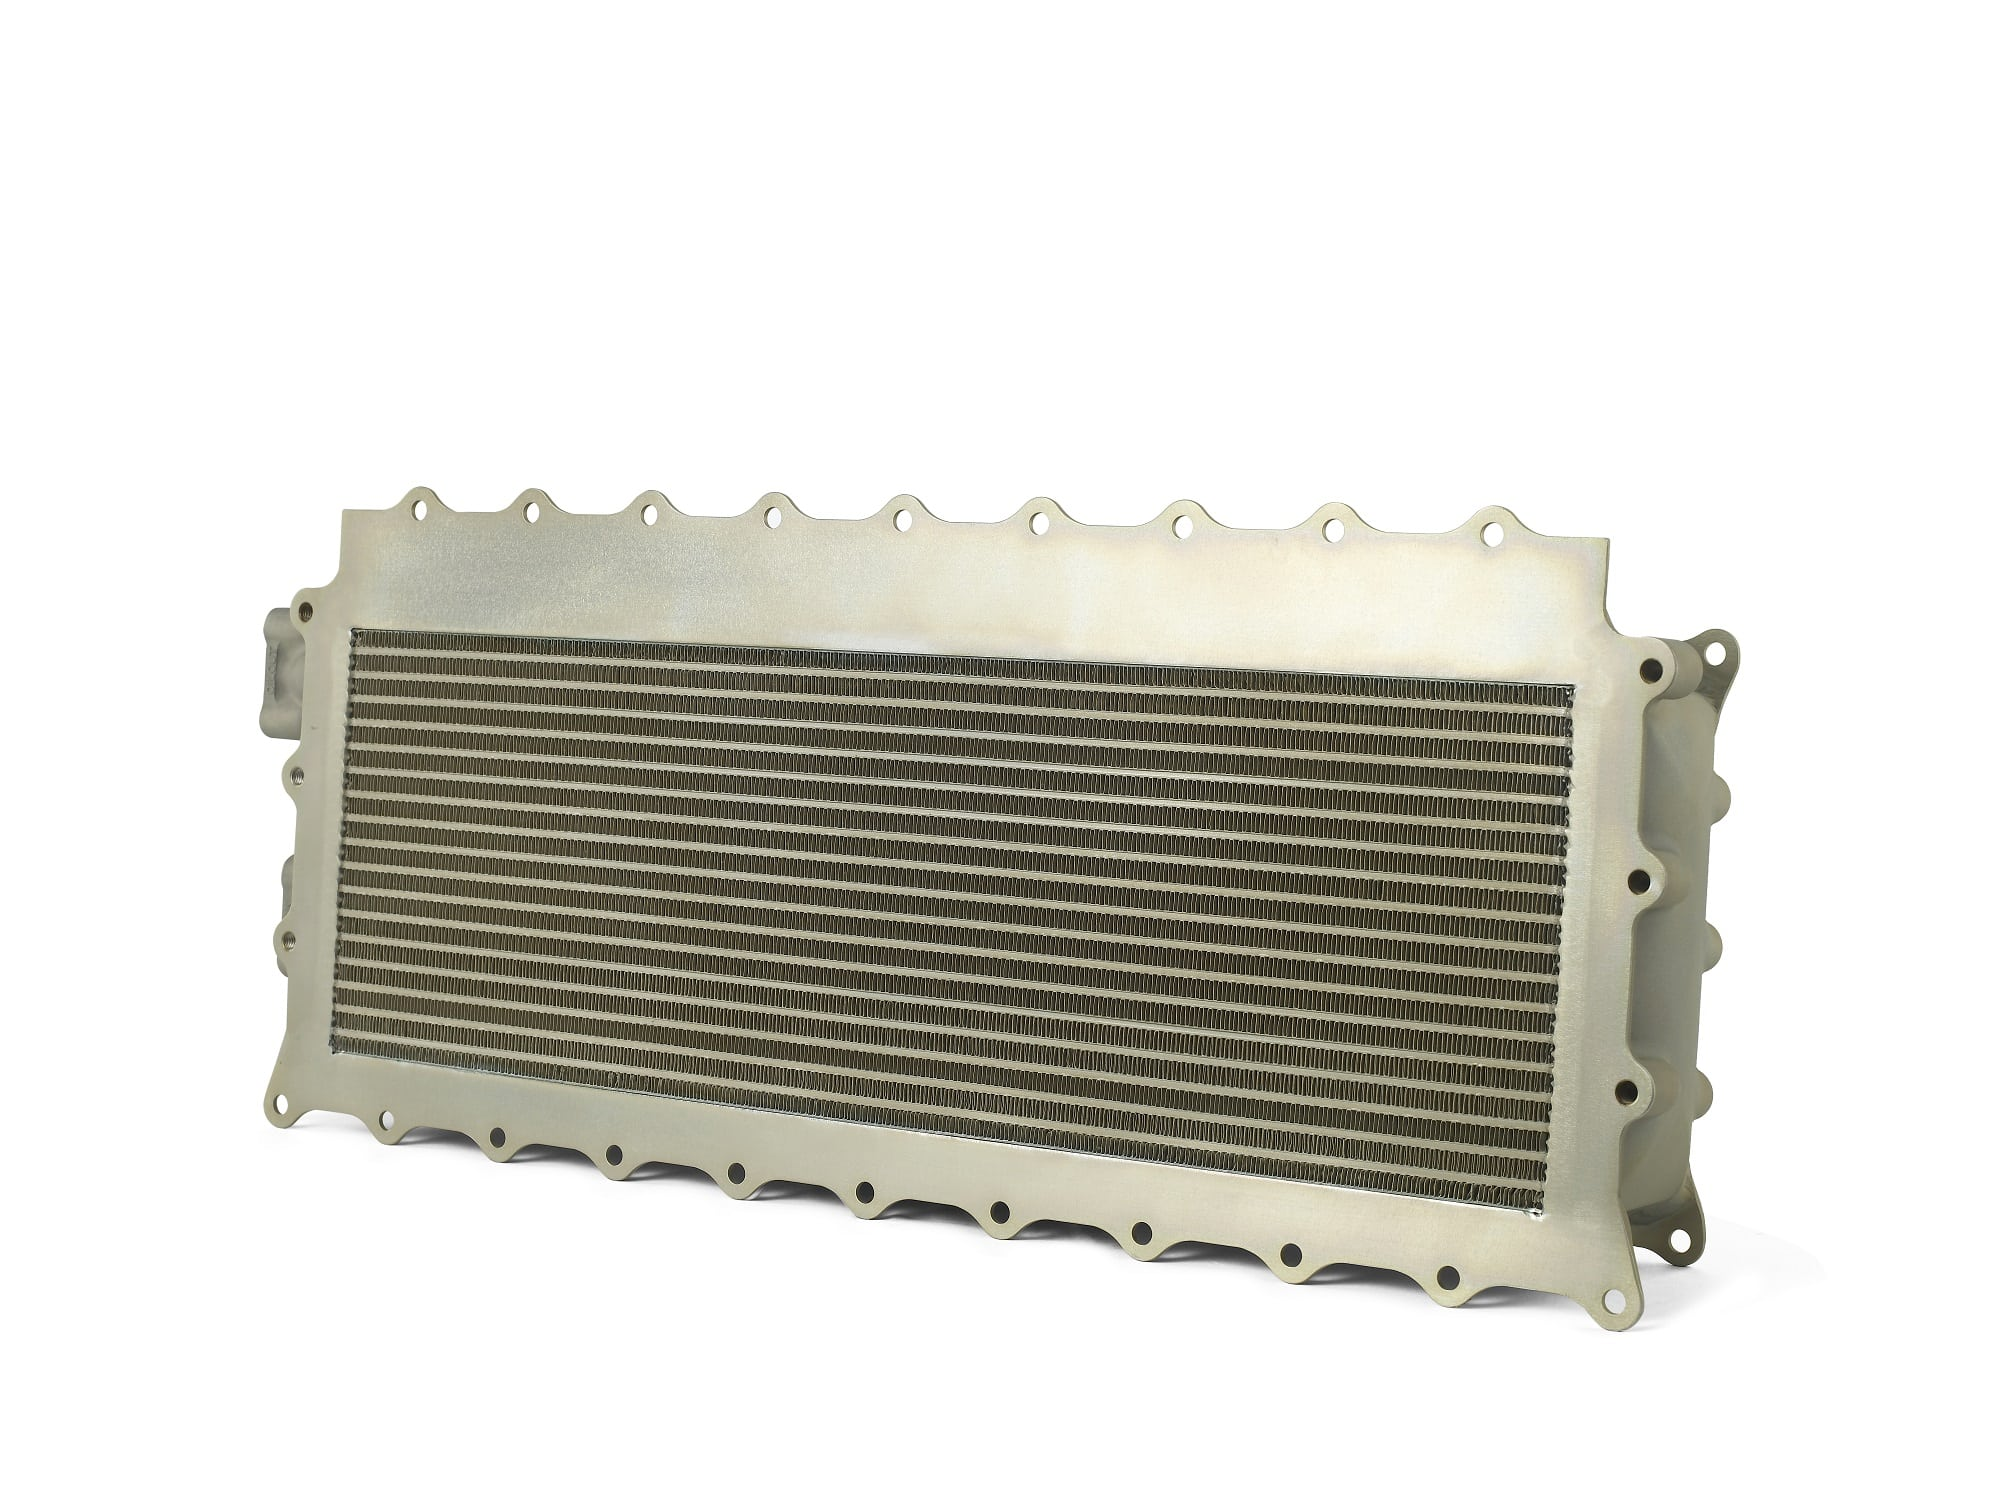 Meggitt heat exchanger, plate and fin